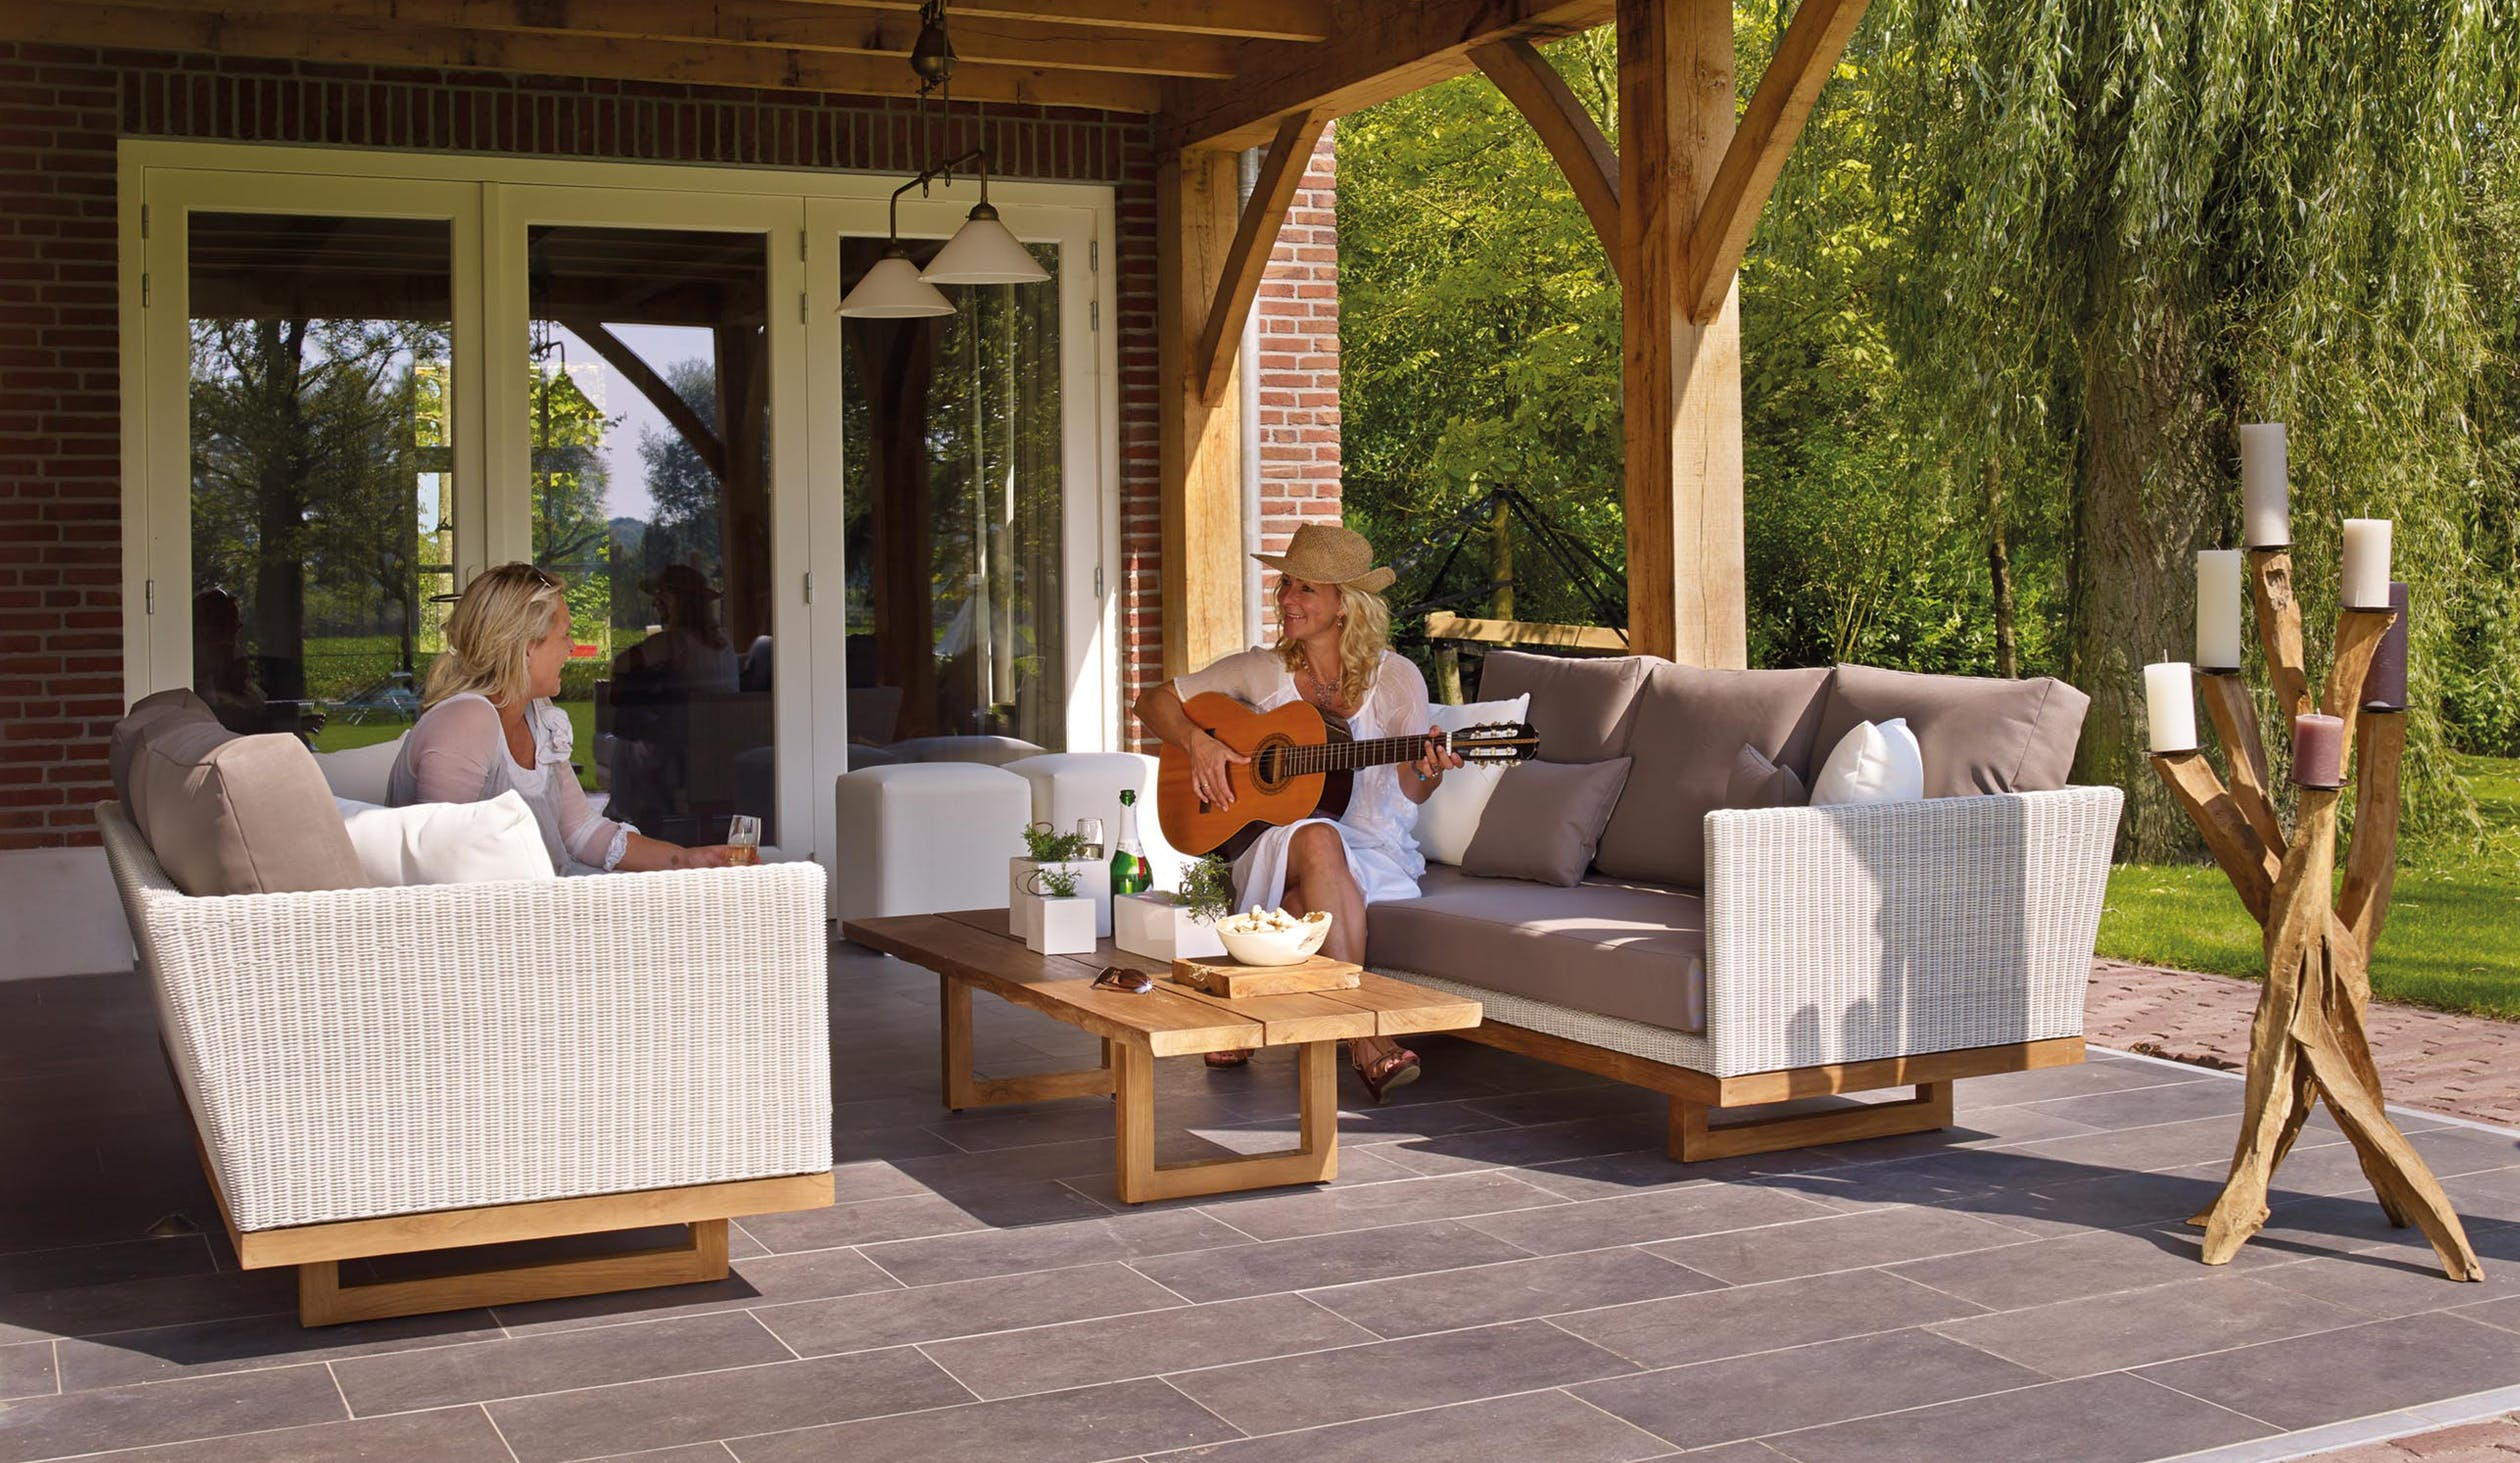 Patio Covers Offer your Home an Additional Room